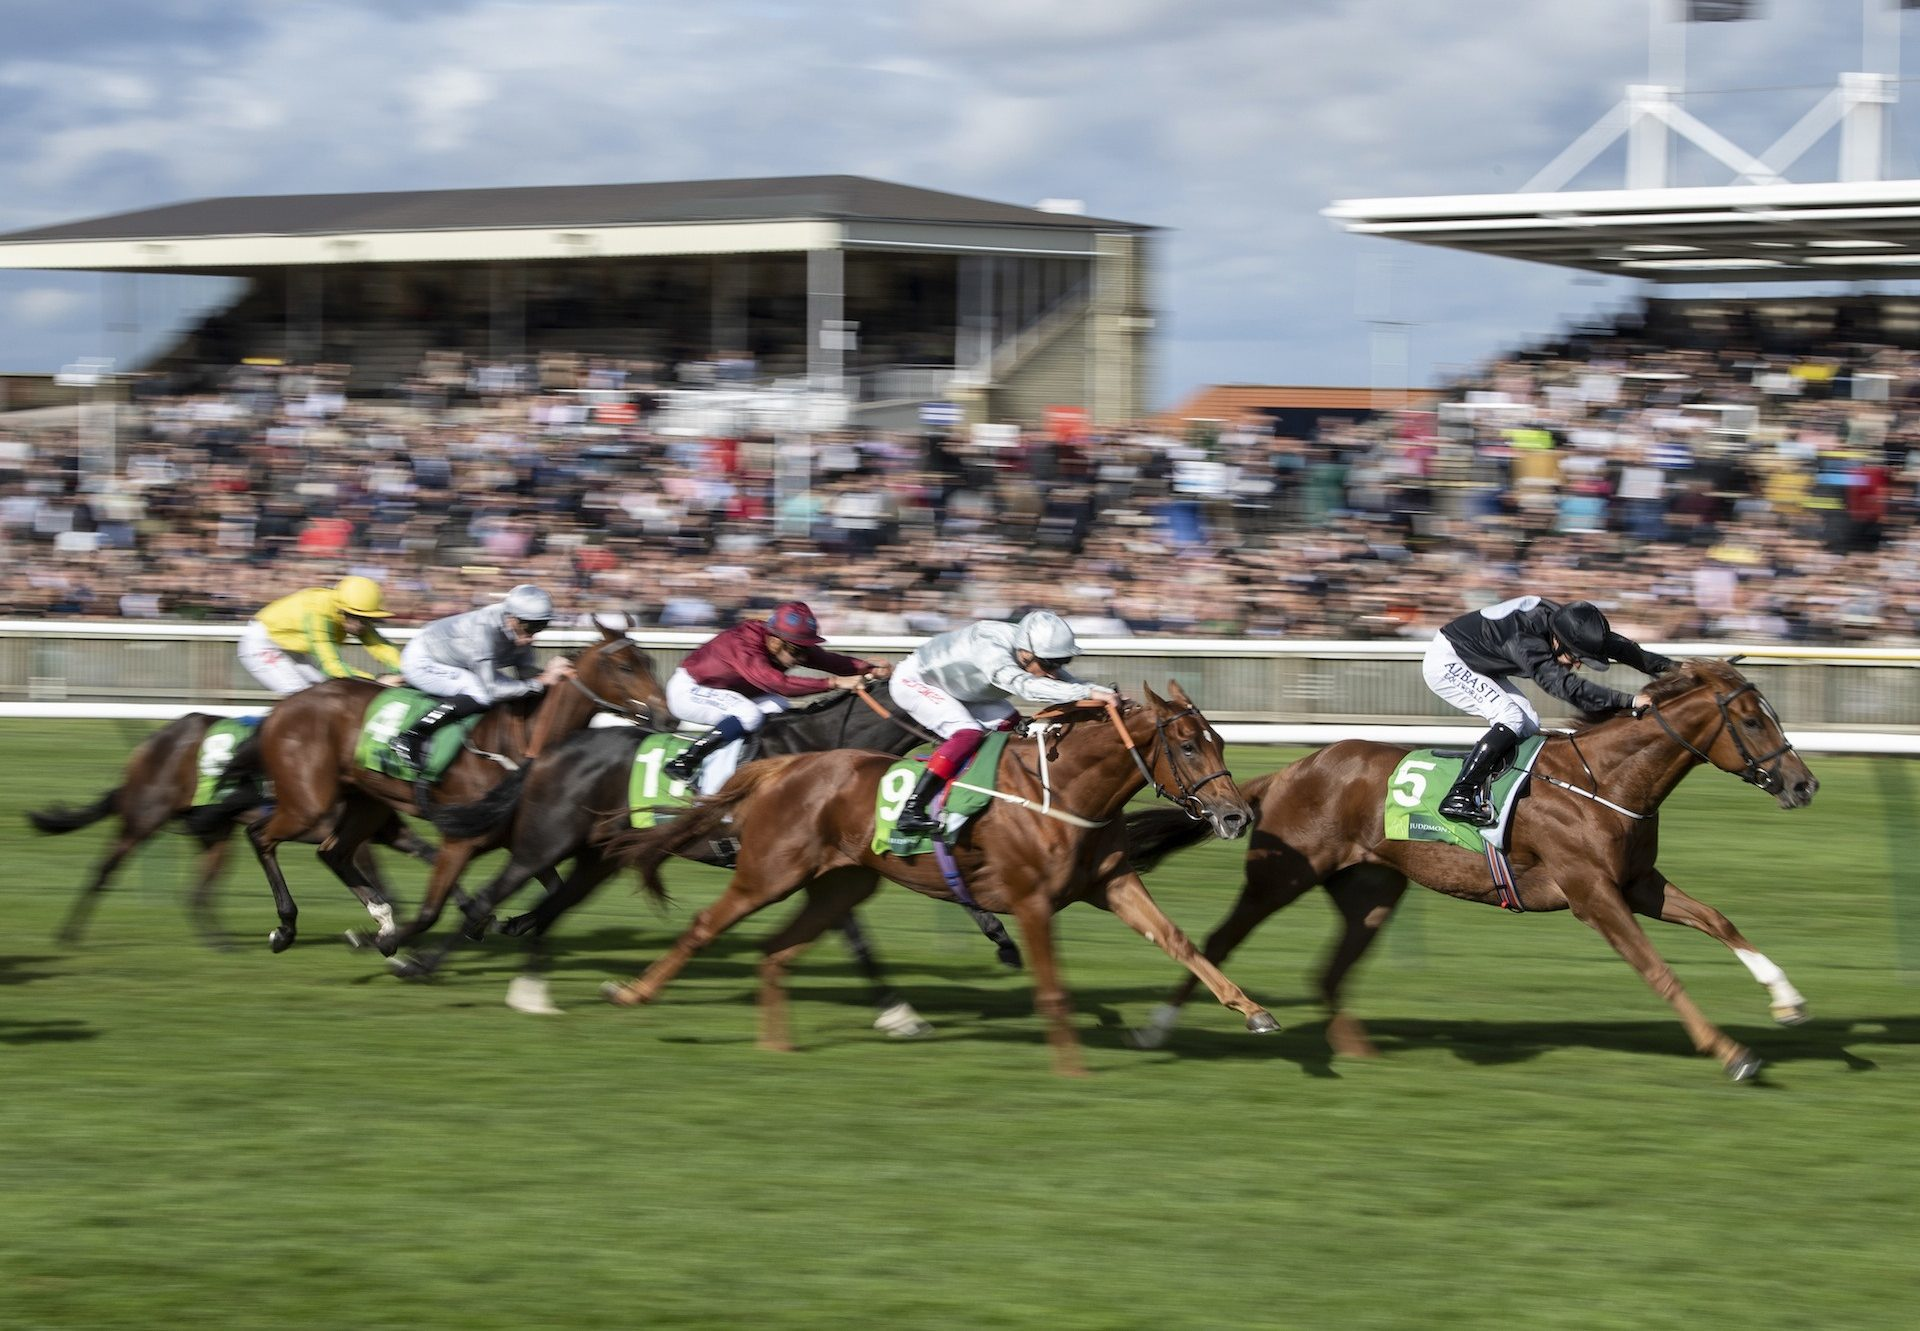 Millisle (Starspangledbanner) winning the Gr.1 Cheveley Park Stakes at Newmarket